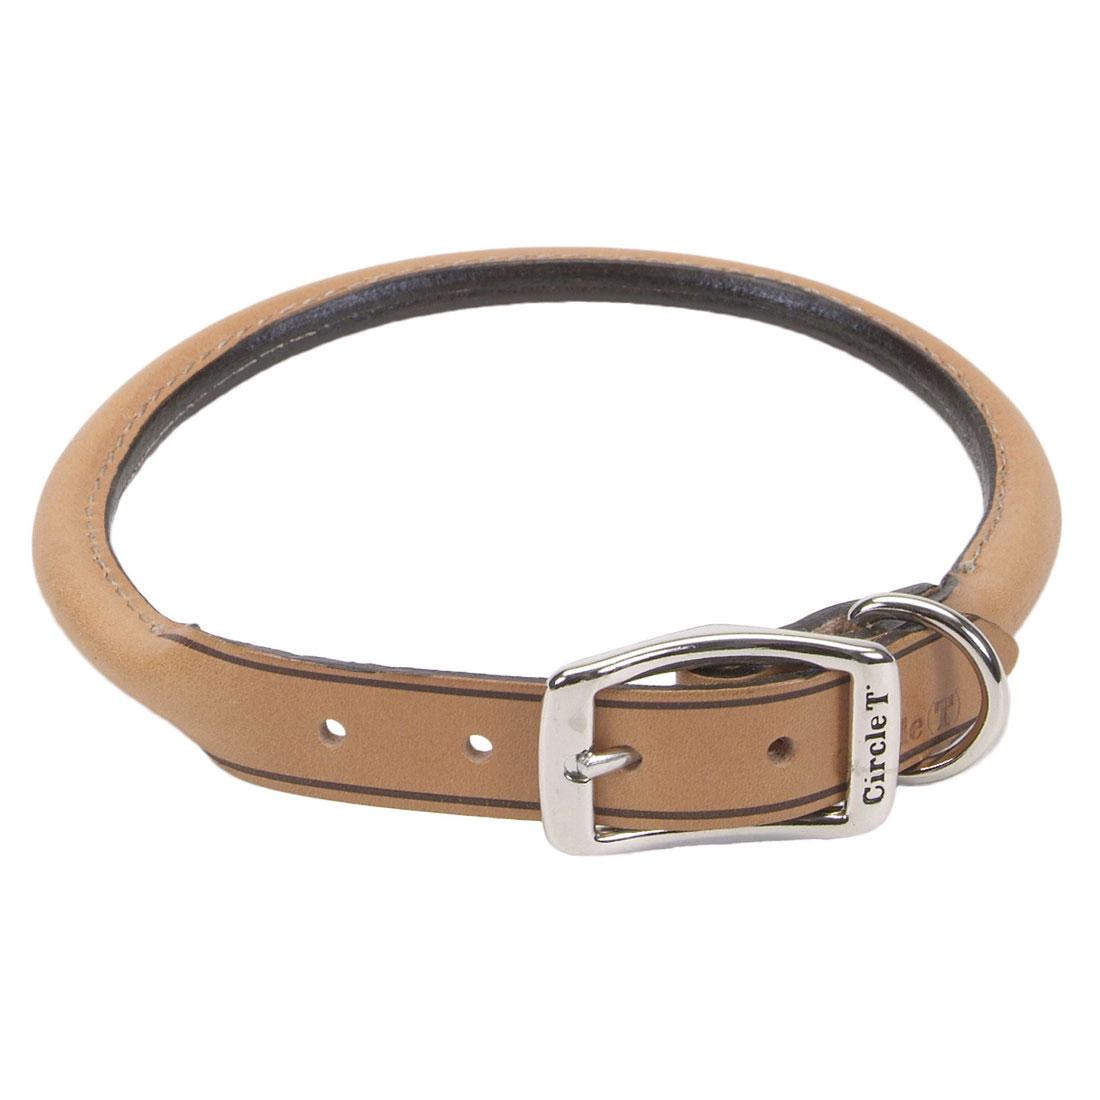 Circle T Oak Tanned Leather Round Dog Collar, Tan, 1-in x 22-in